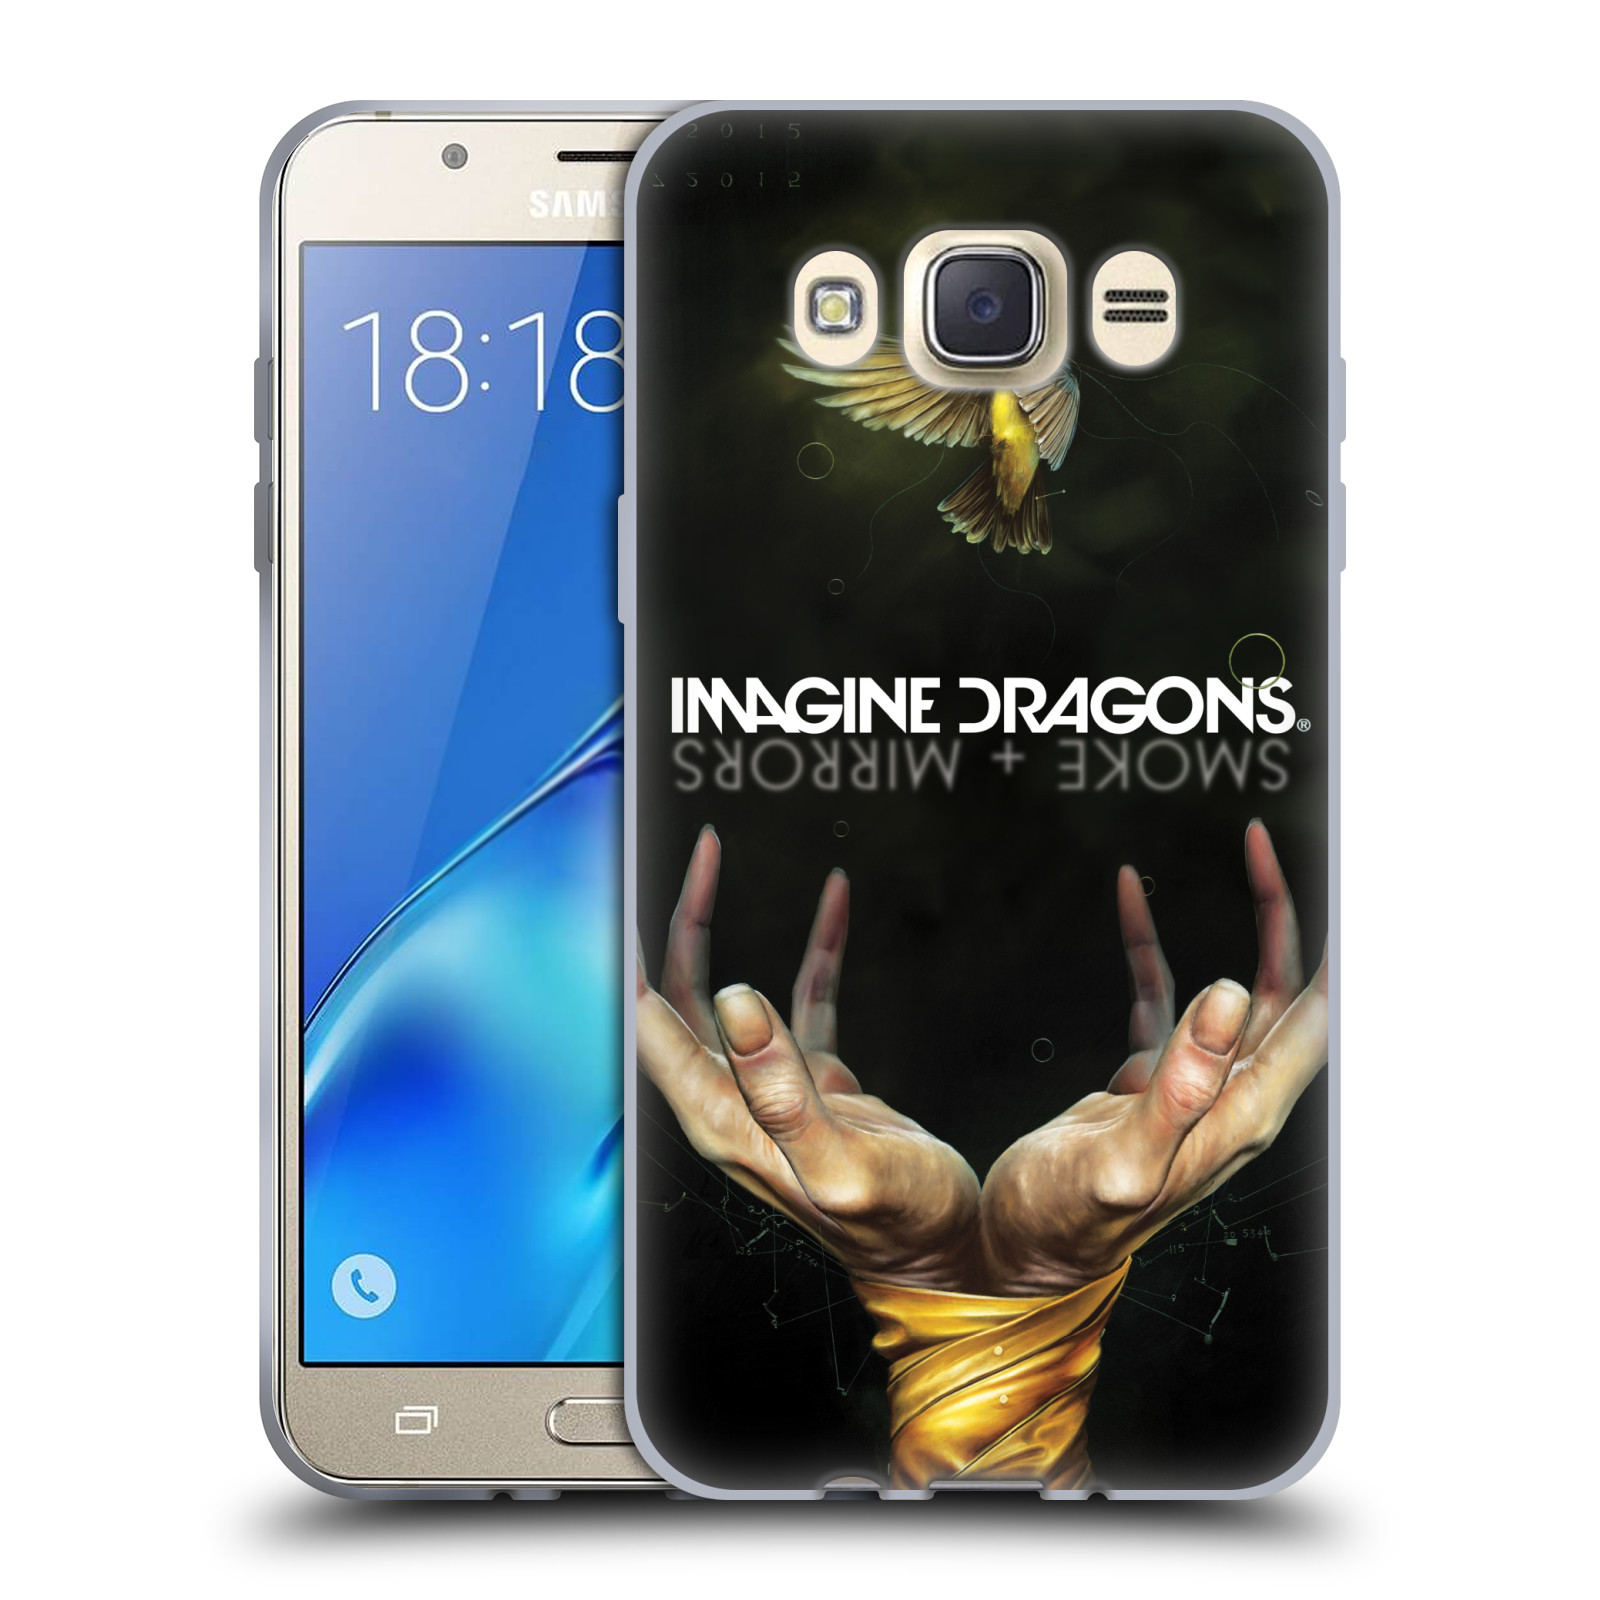 HEAD CASE silikonový obal na mobil Samsung Galaxy J7 2016 hudební skupina Imagine Dragons SMOKE and MIRRORS